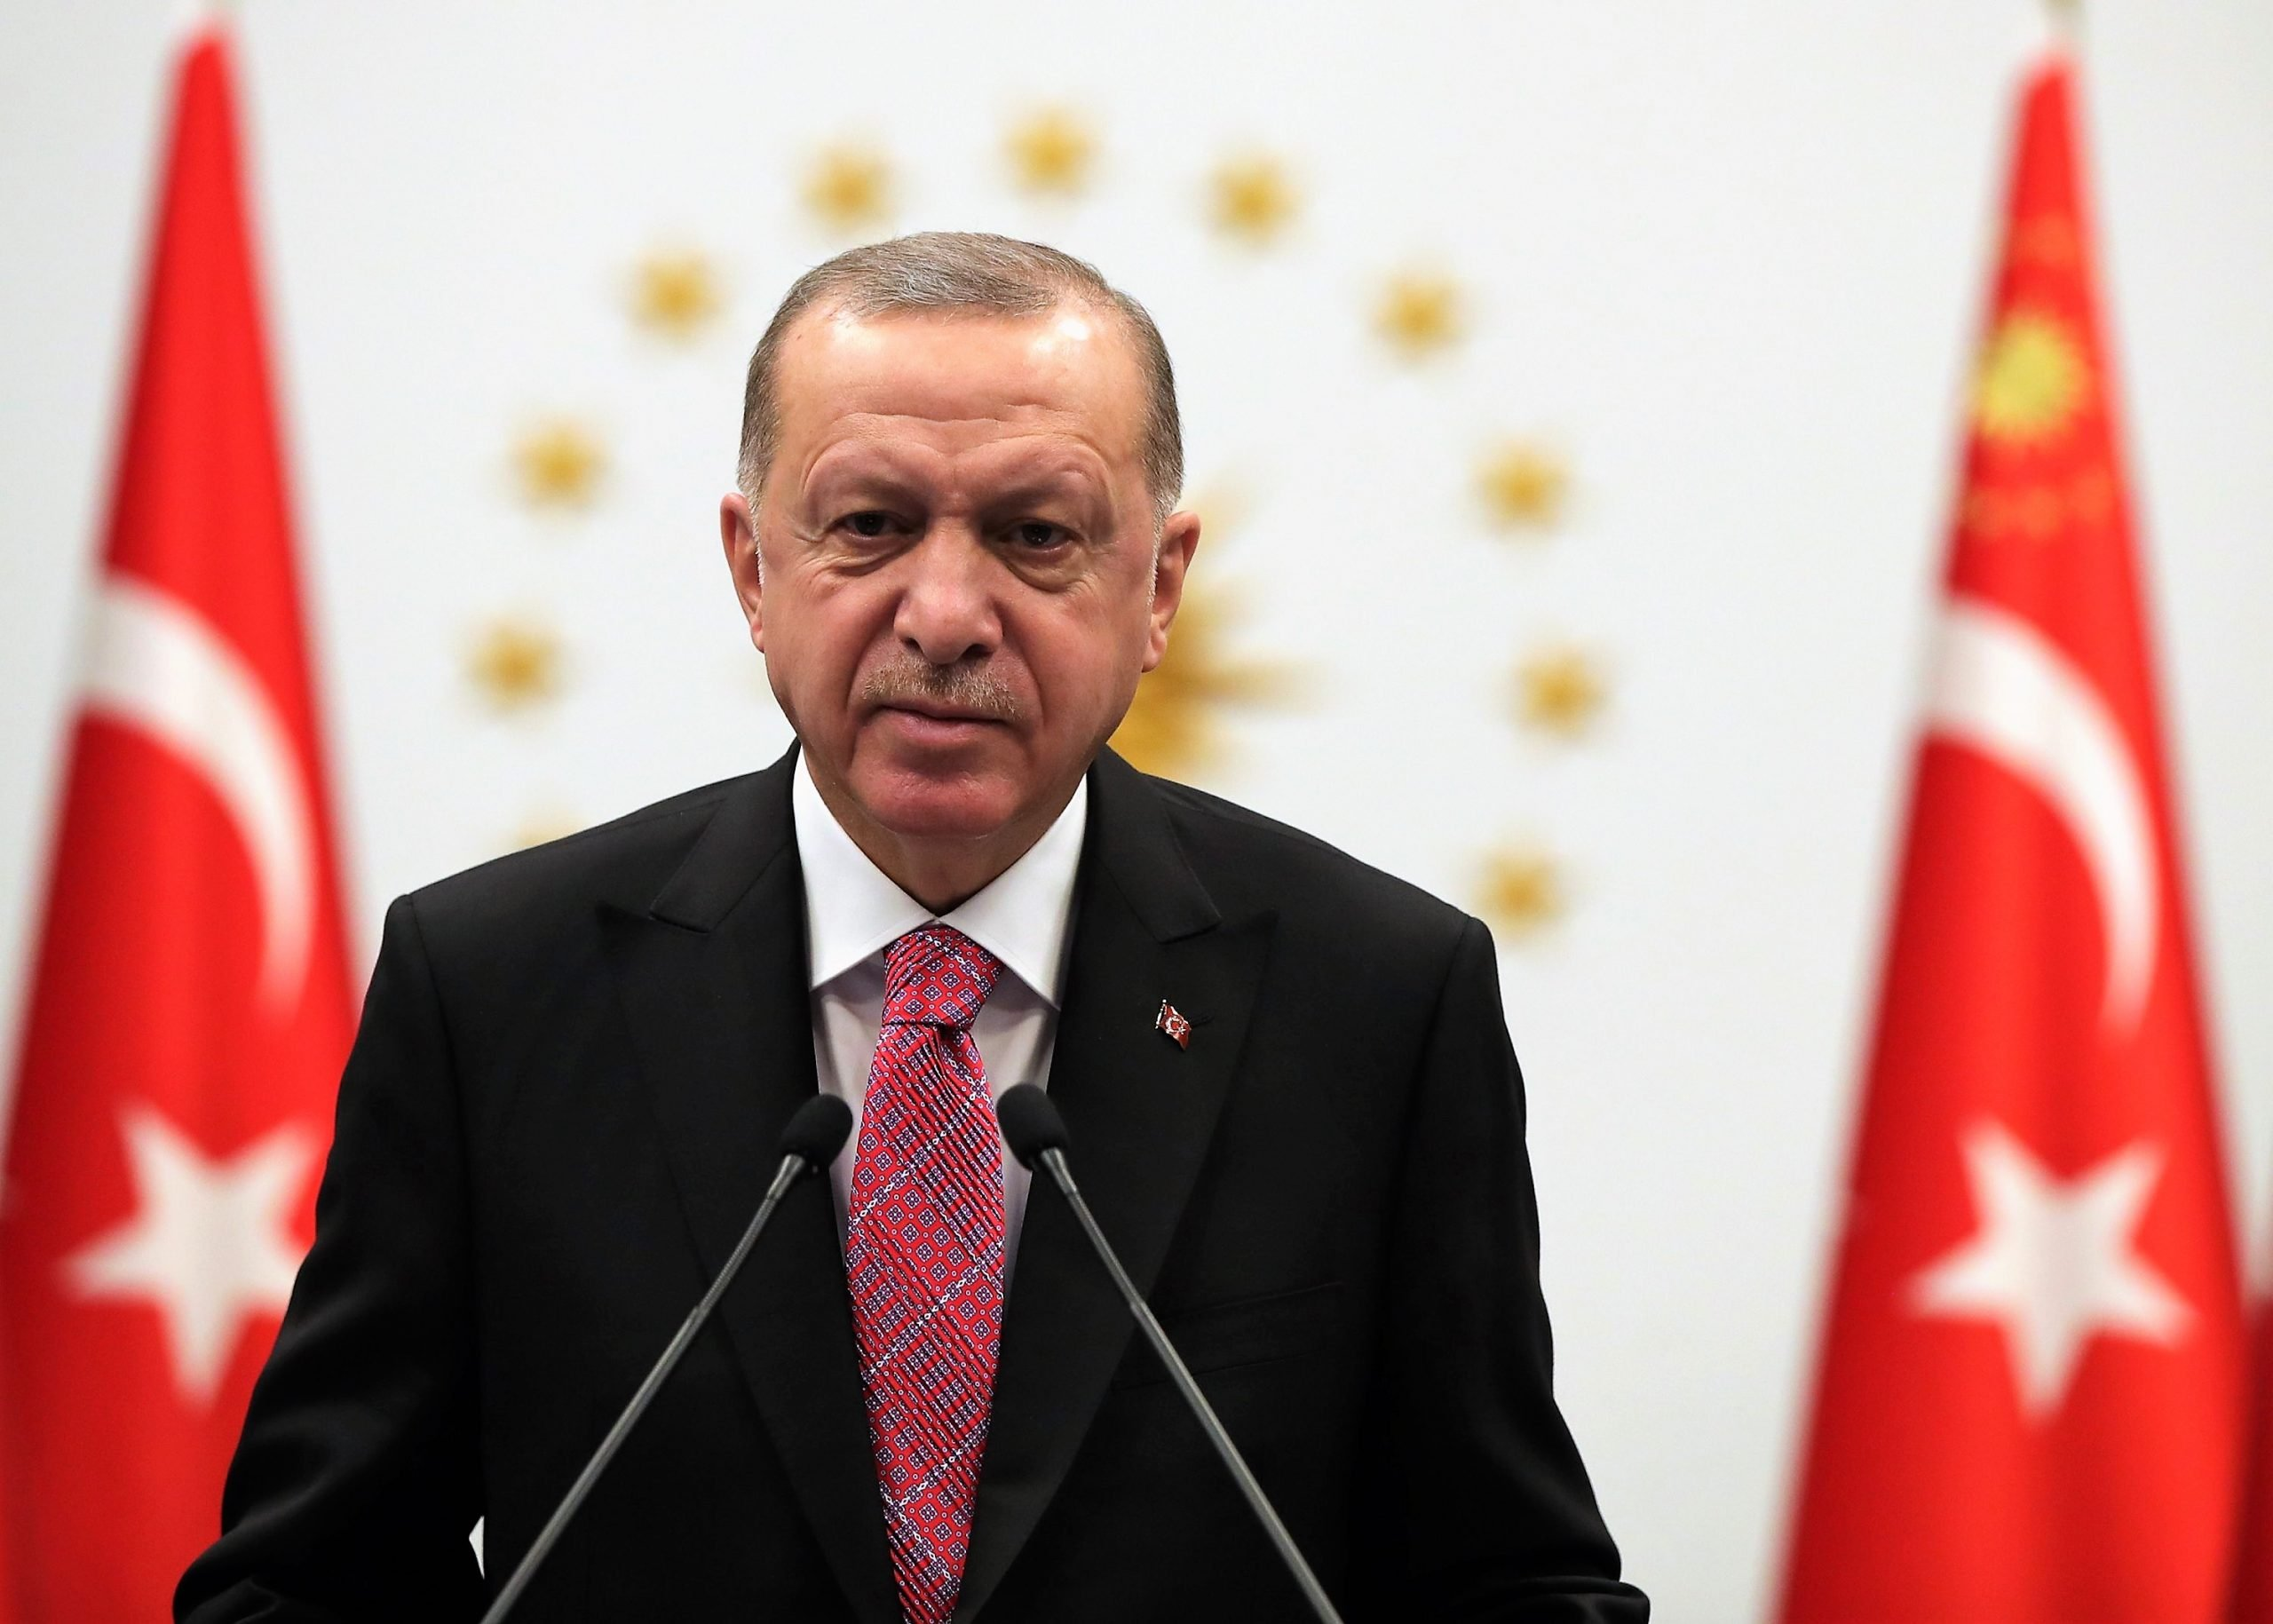 President Recep Tayyip Erdoğan speaks at the joint opening ceremony of museums in Konya, Tunceli and Bursa provinces via teleconference